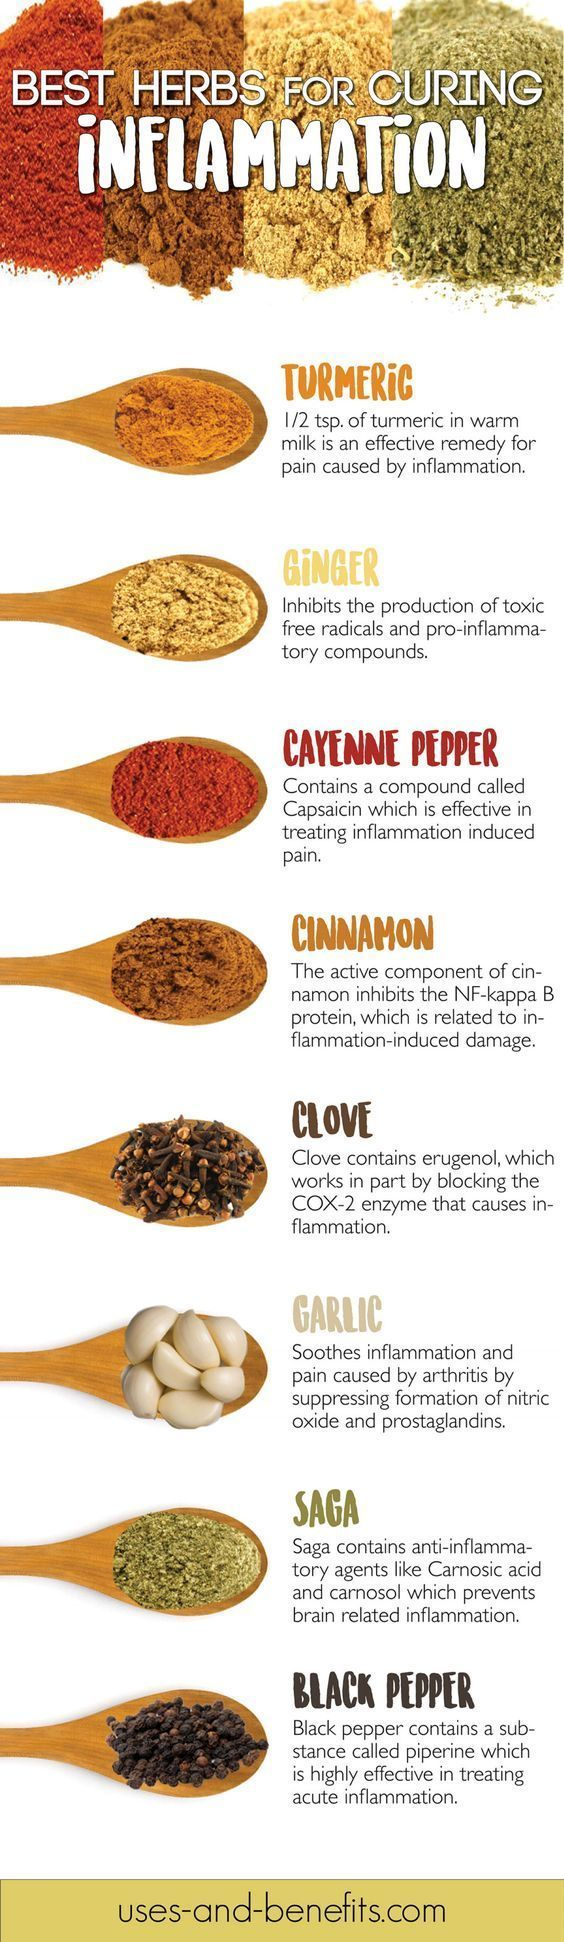 This Infographic Shares the Best Herbs for Curing Inflammation Fast